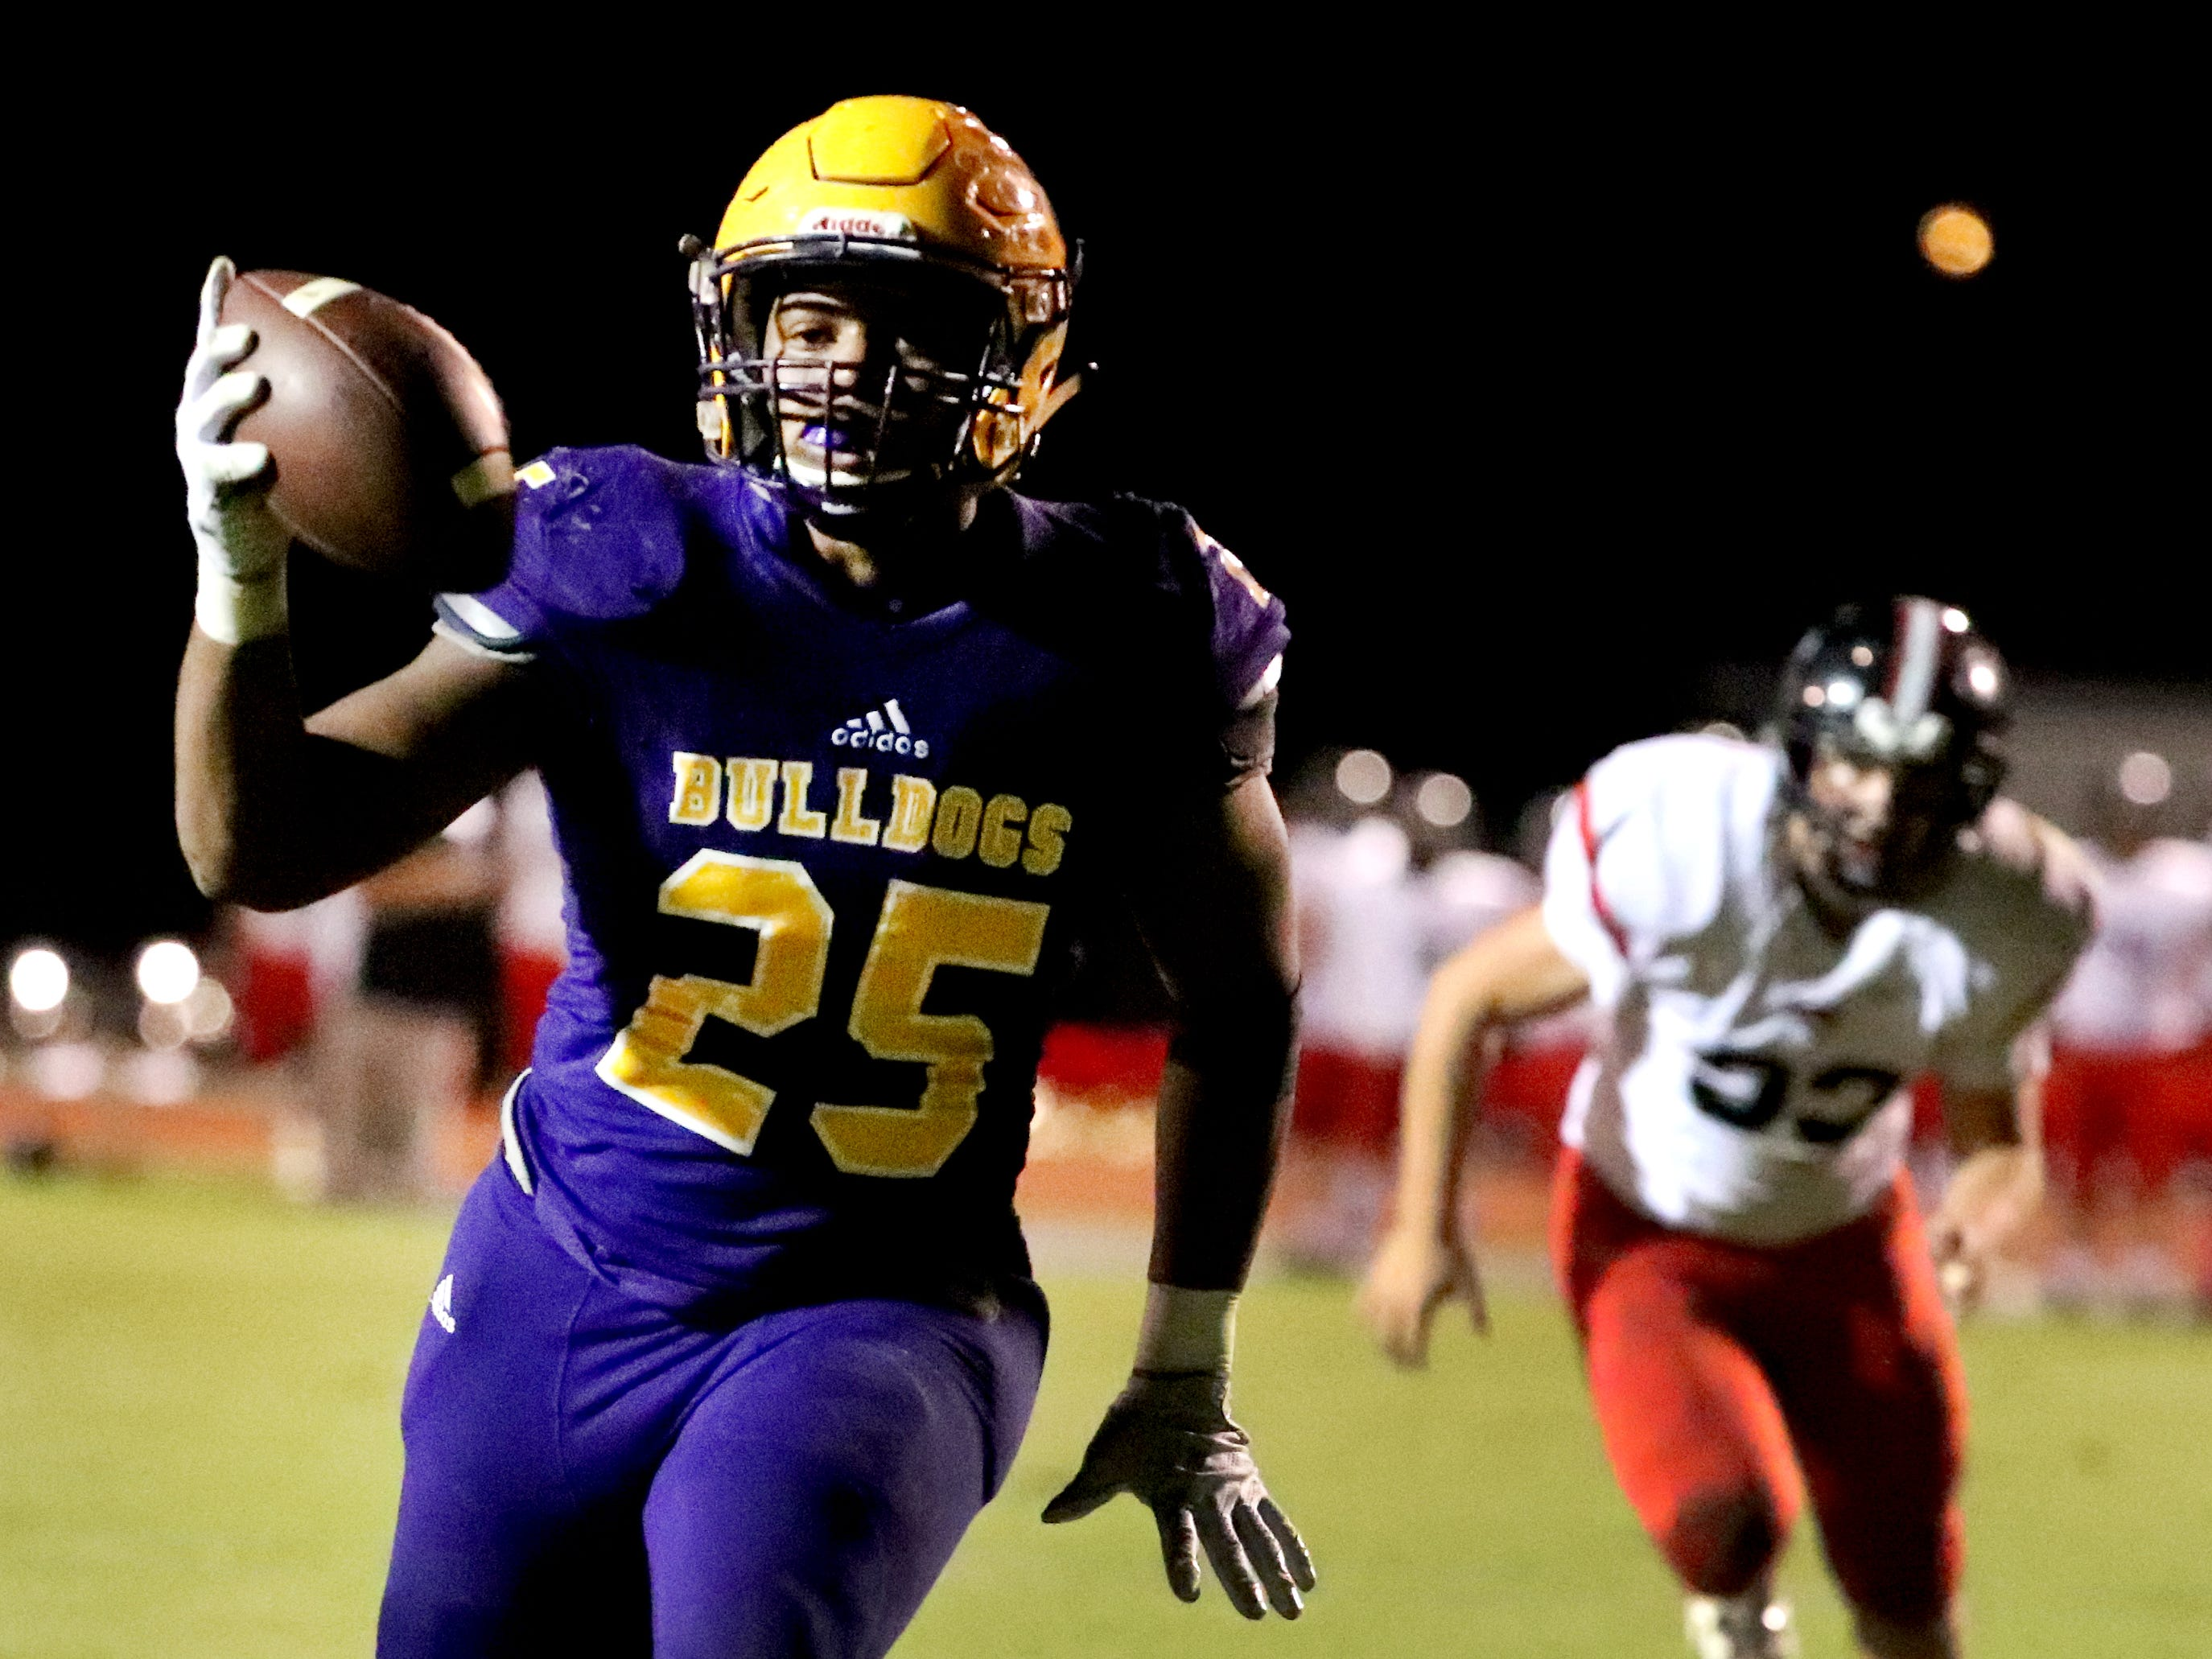 Smyrna's Josh Bailey (25) runs the ball in for a touchdown against Stewarts Creek at Smyrna High School on Friday, Oct. 12, 2018.